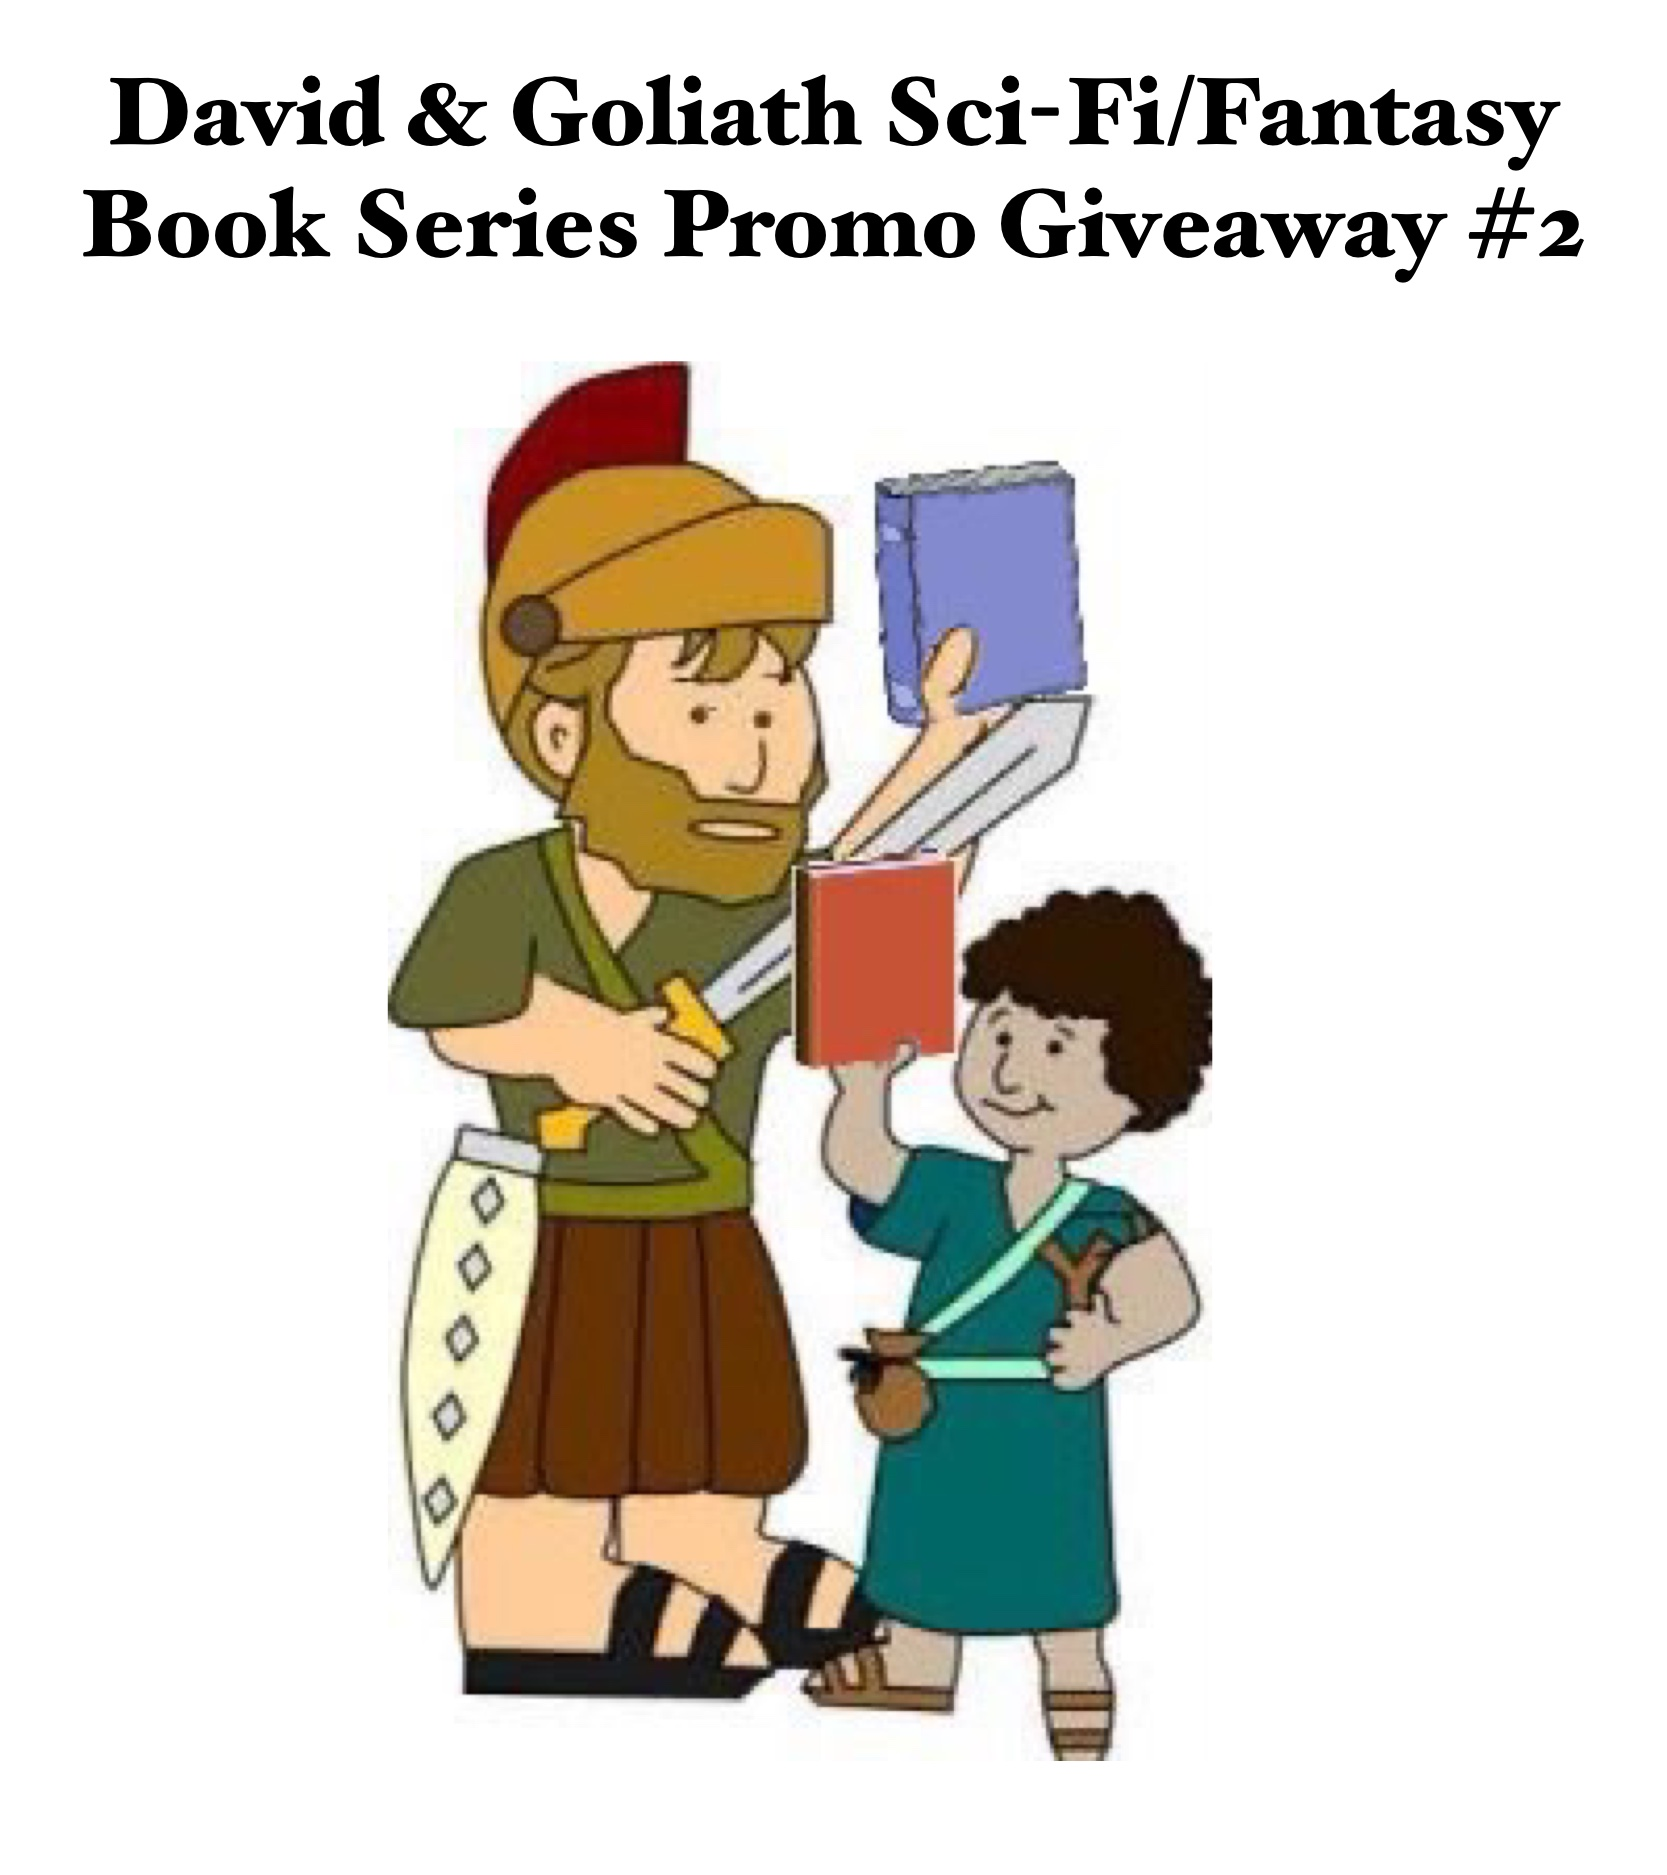 Pay It Forward!  The Road To Successful Self-Publishing Is Paved By David & Goliath Working Together!